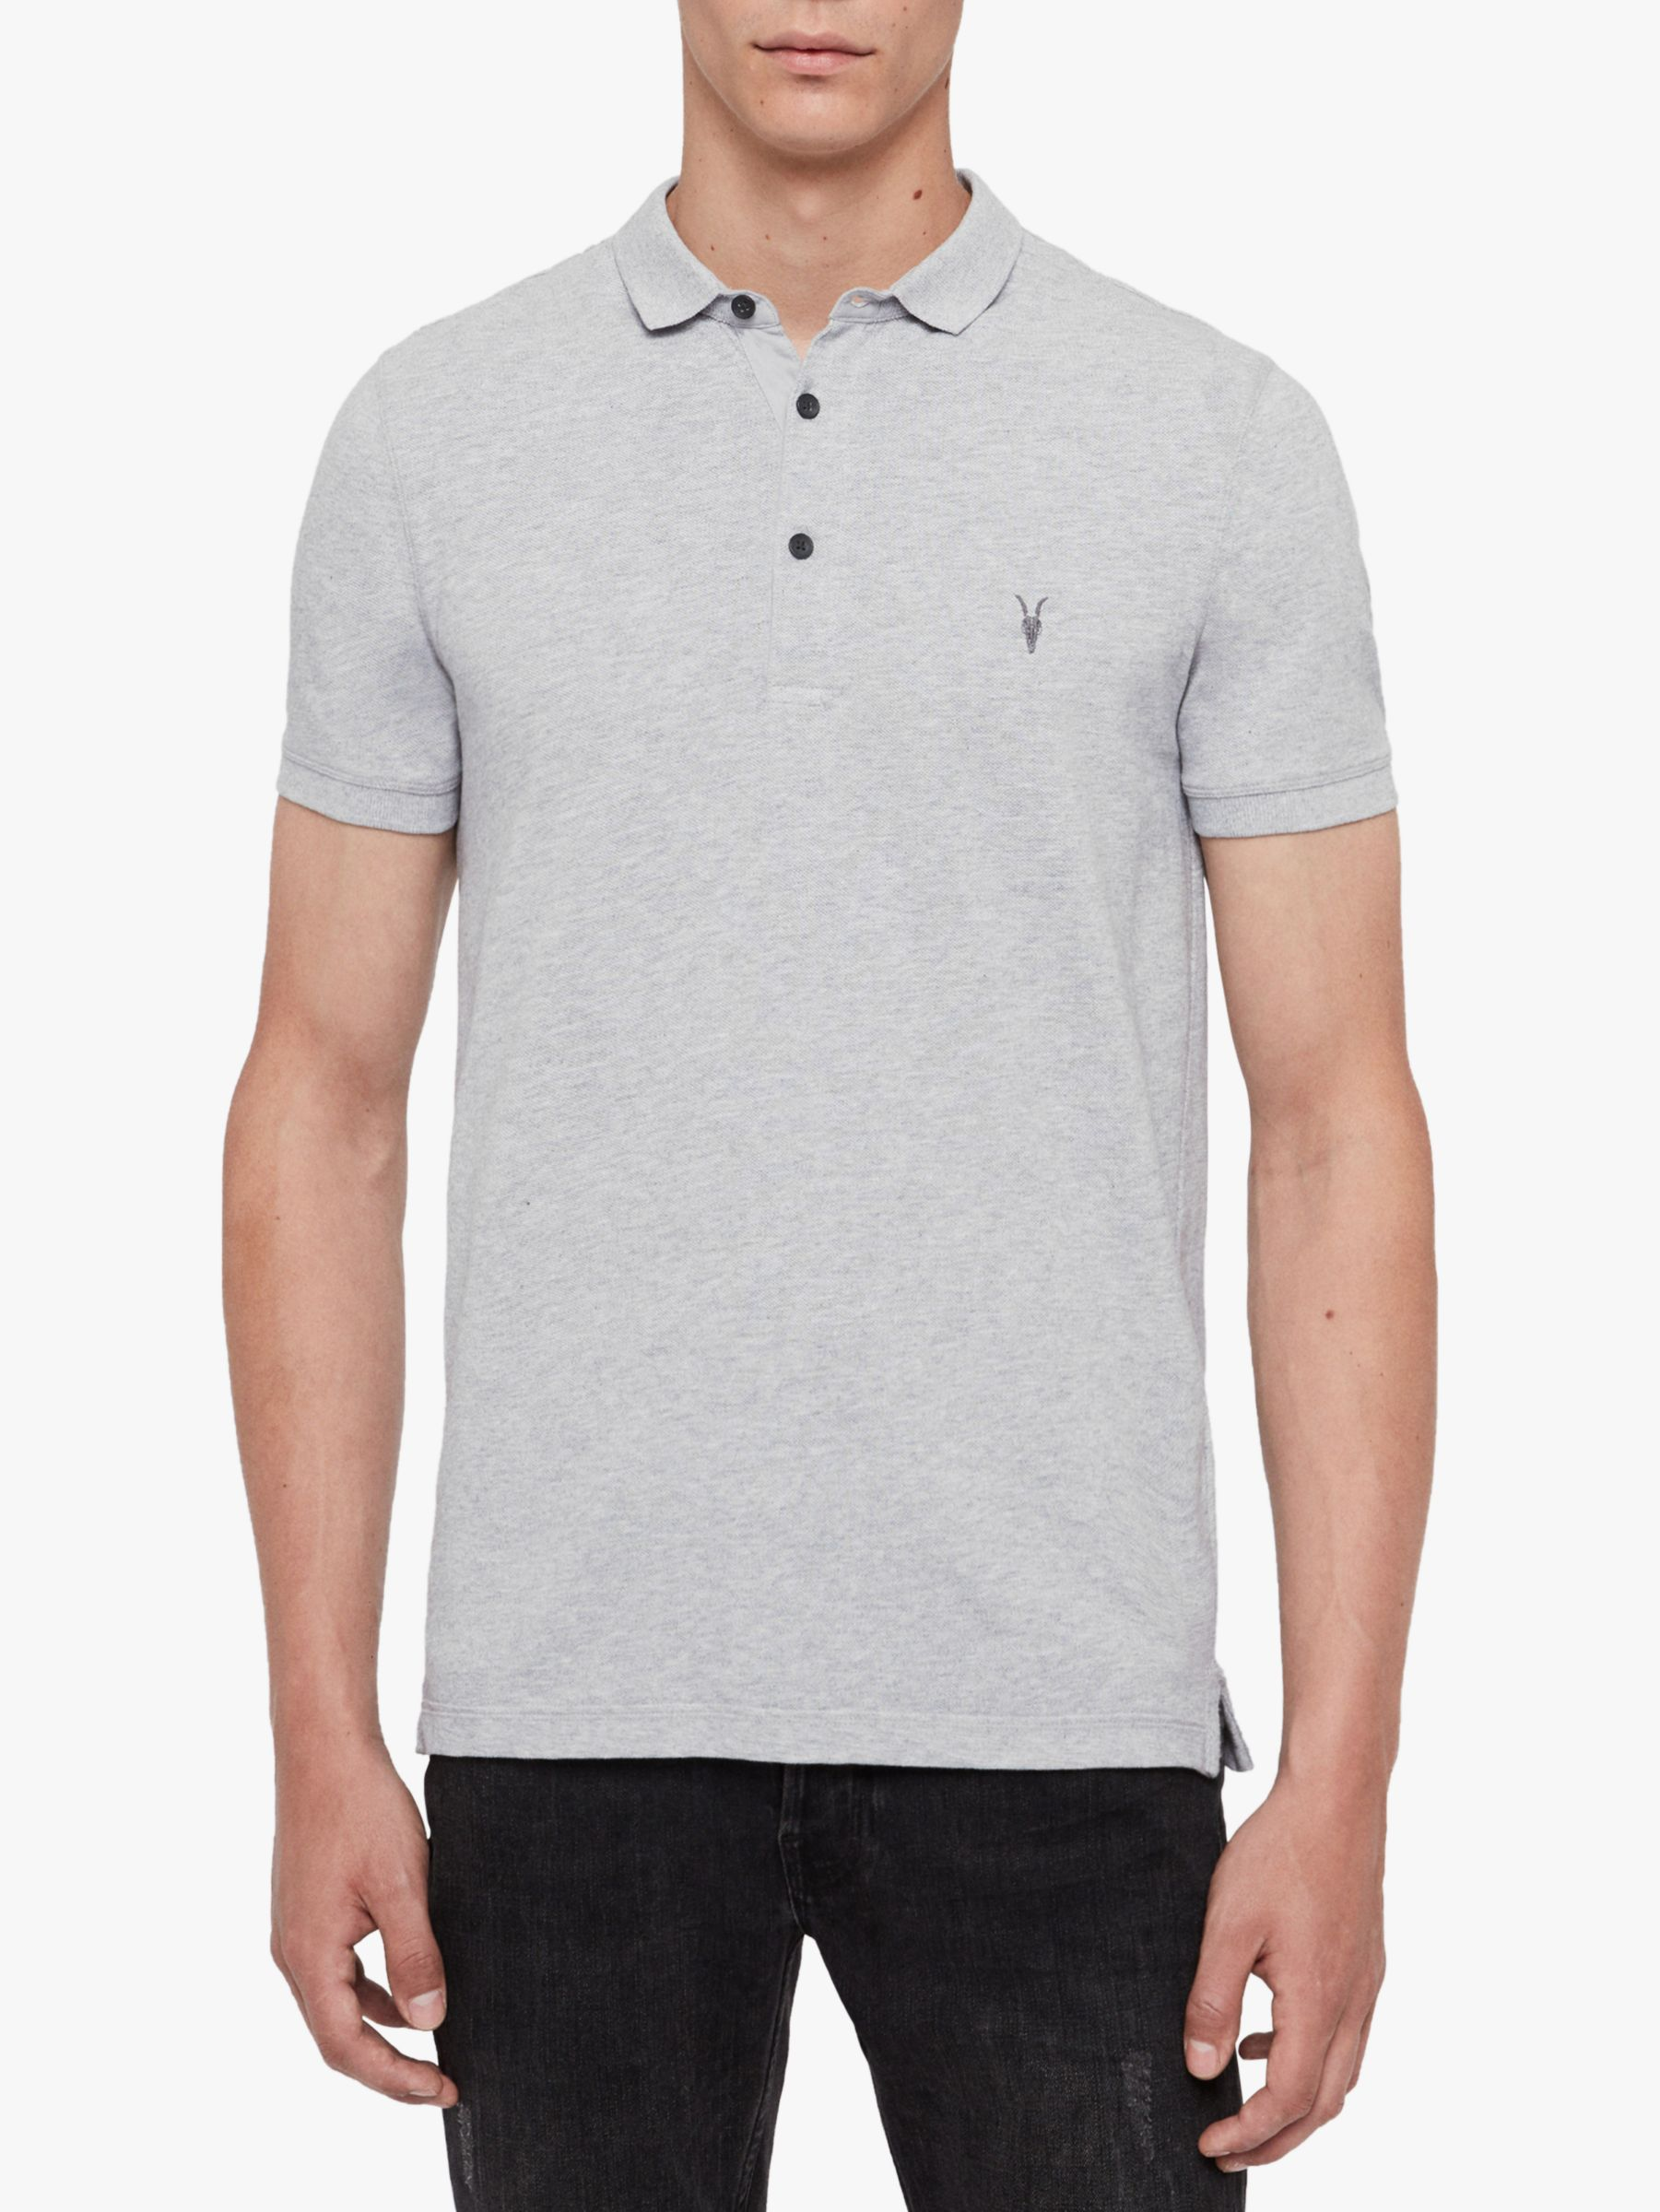 AllSaints AllSaints Reform Short Sleeve Slim Polo Shirt